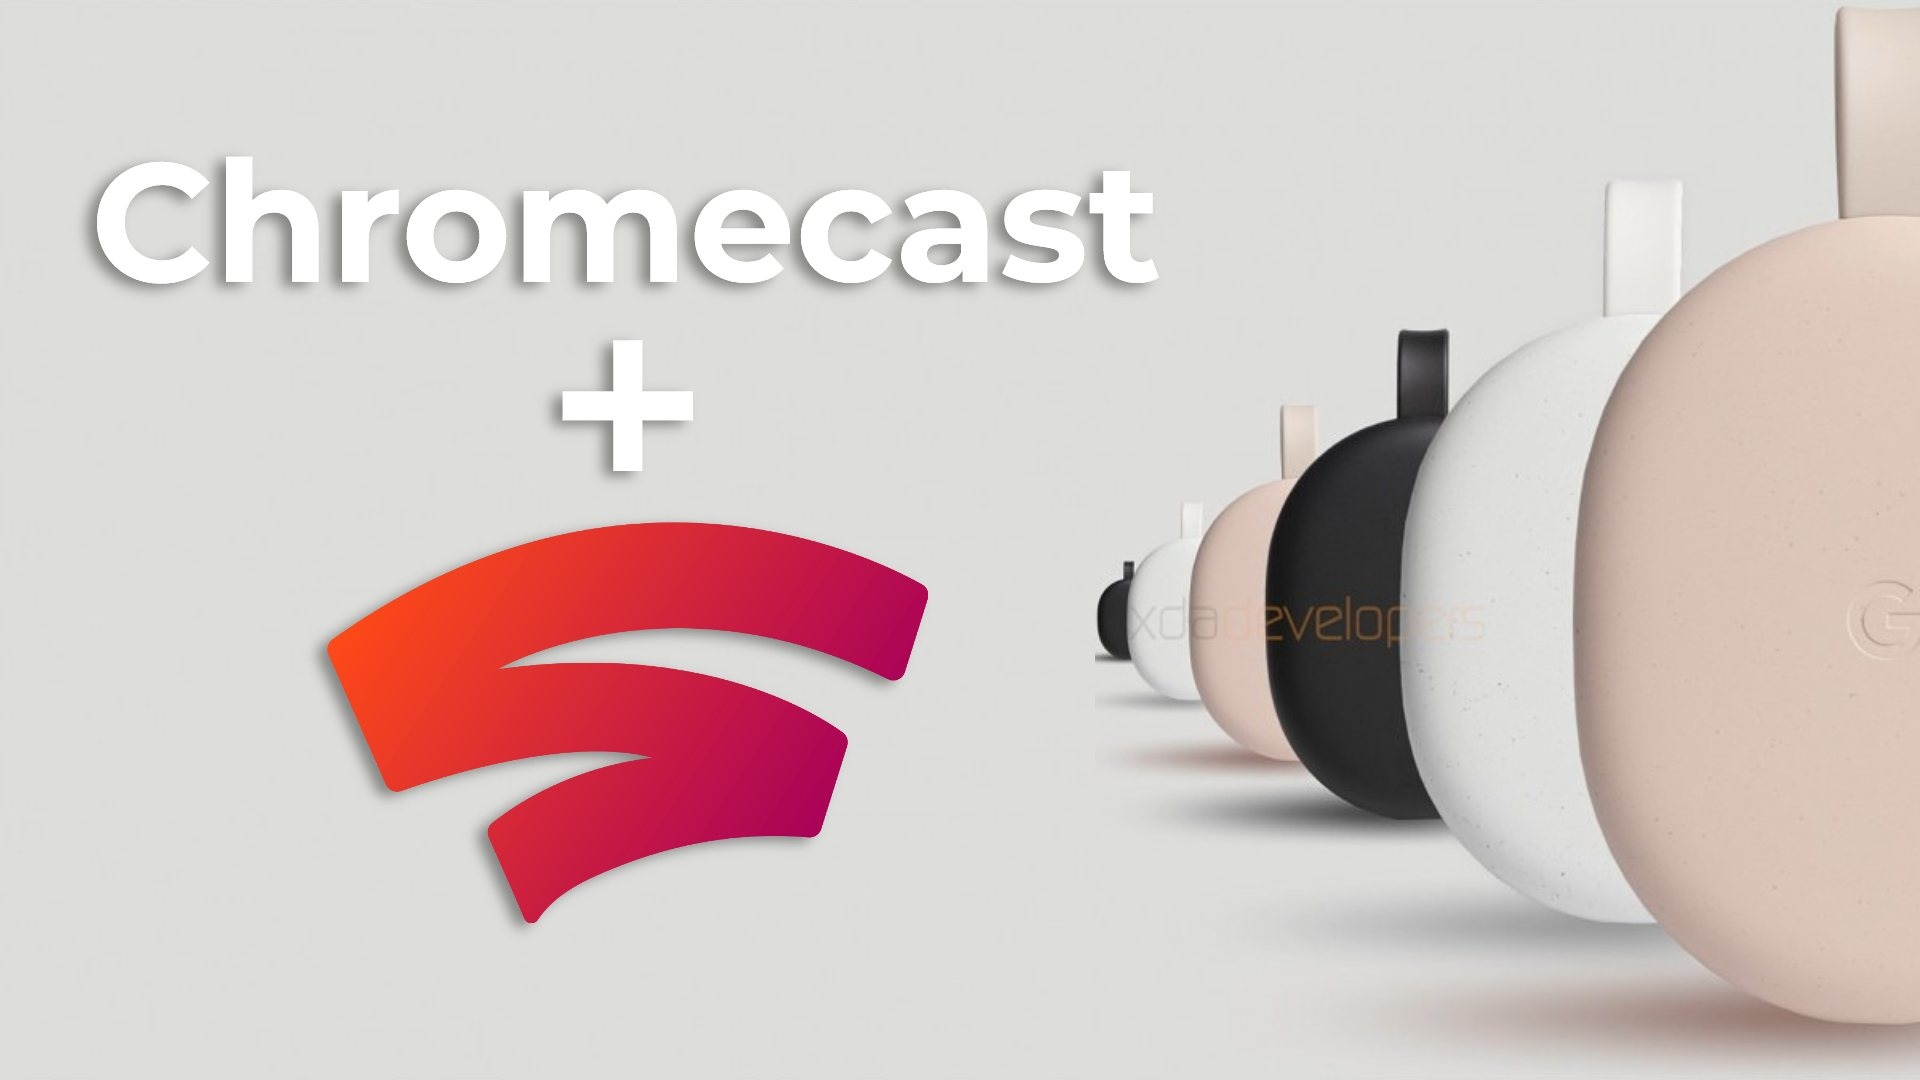 Stadia may be coming to the new Chromecast via the Android app